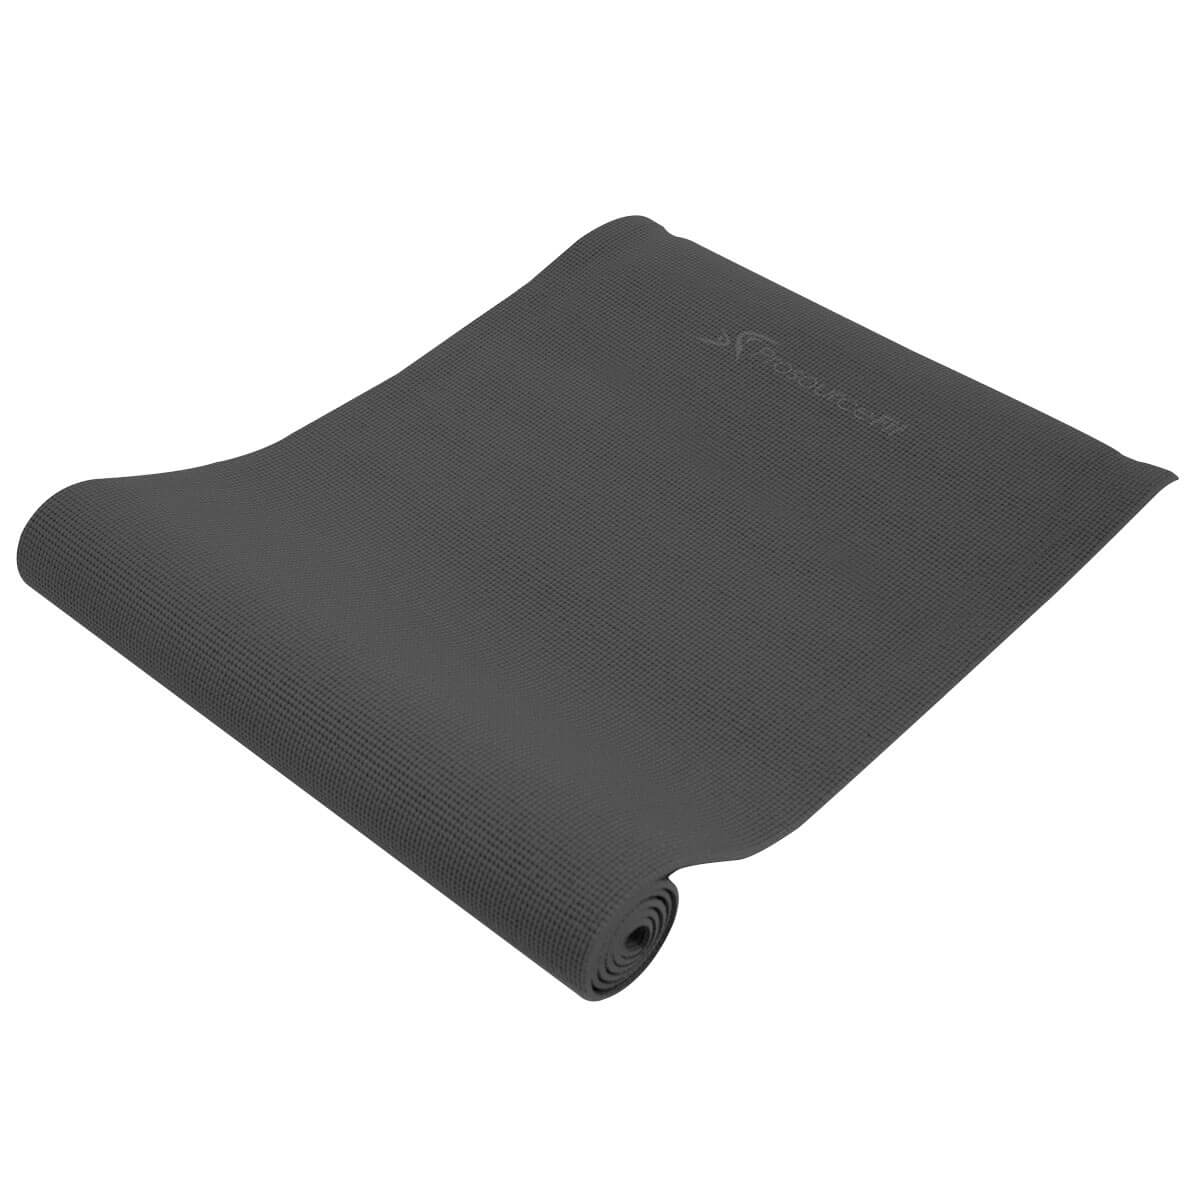 Prosource Original Yoga Exercise Mat 1/4